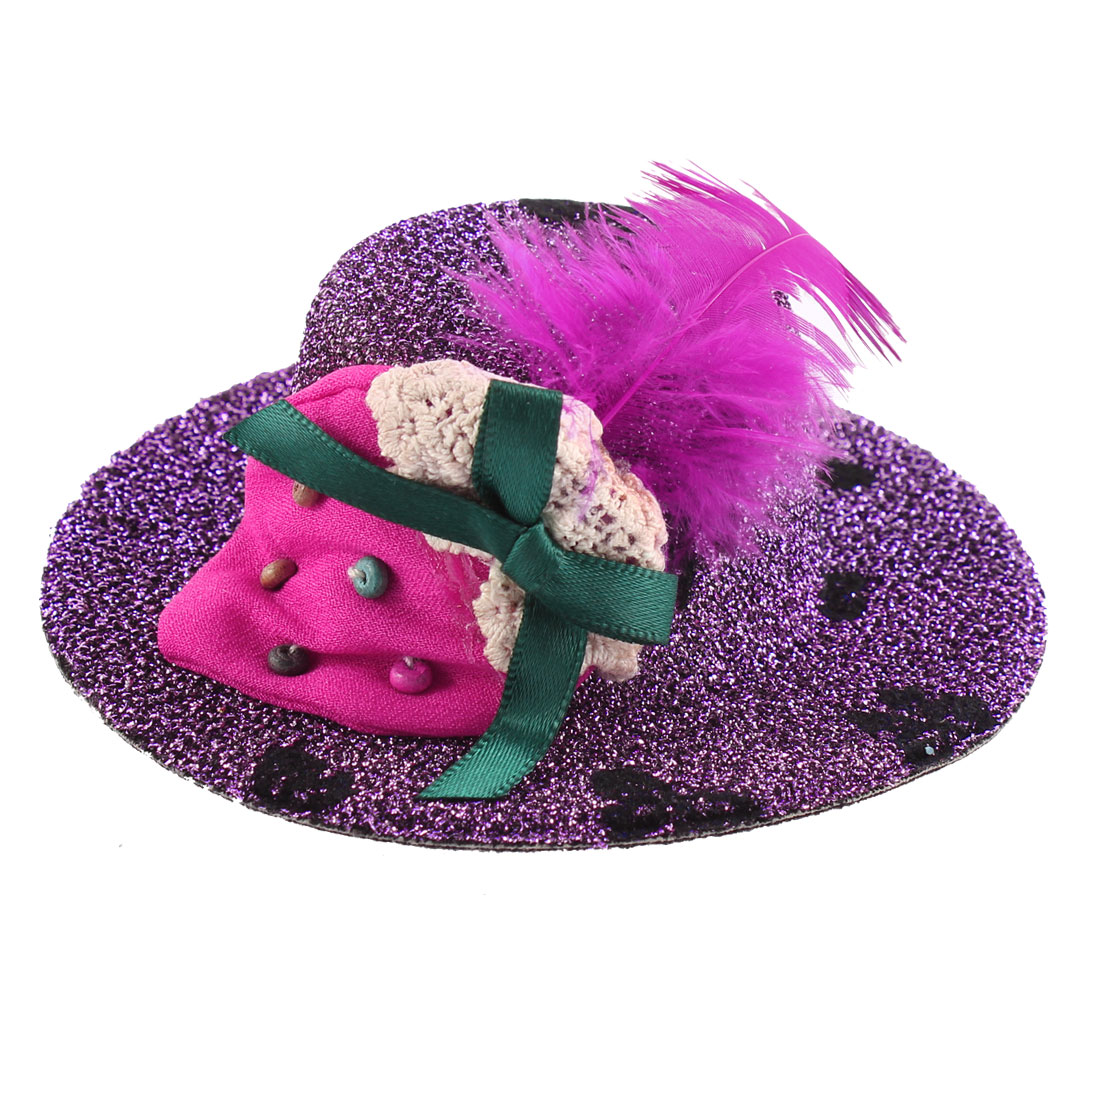 Lady Bowknot Print Fuchsia Strawberry Detail Glittery Tinsel Coated Top Hat Hairclip Purple